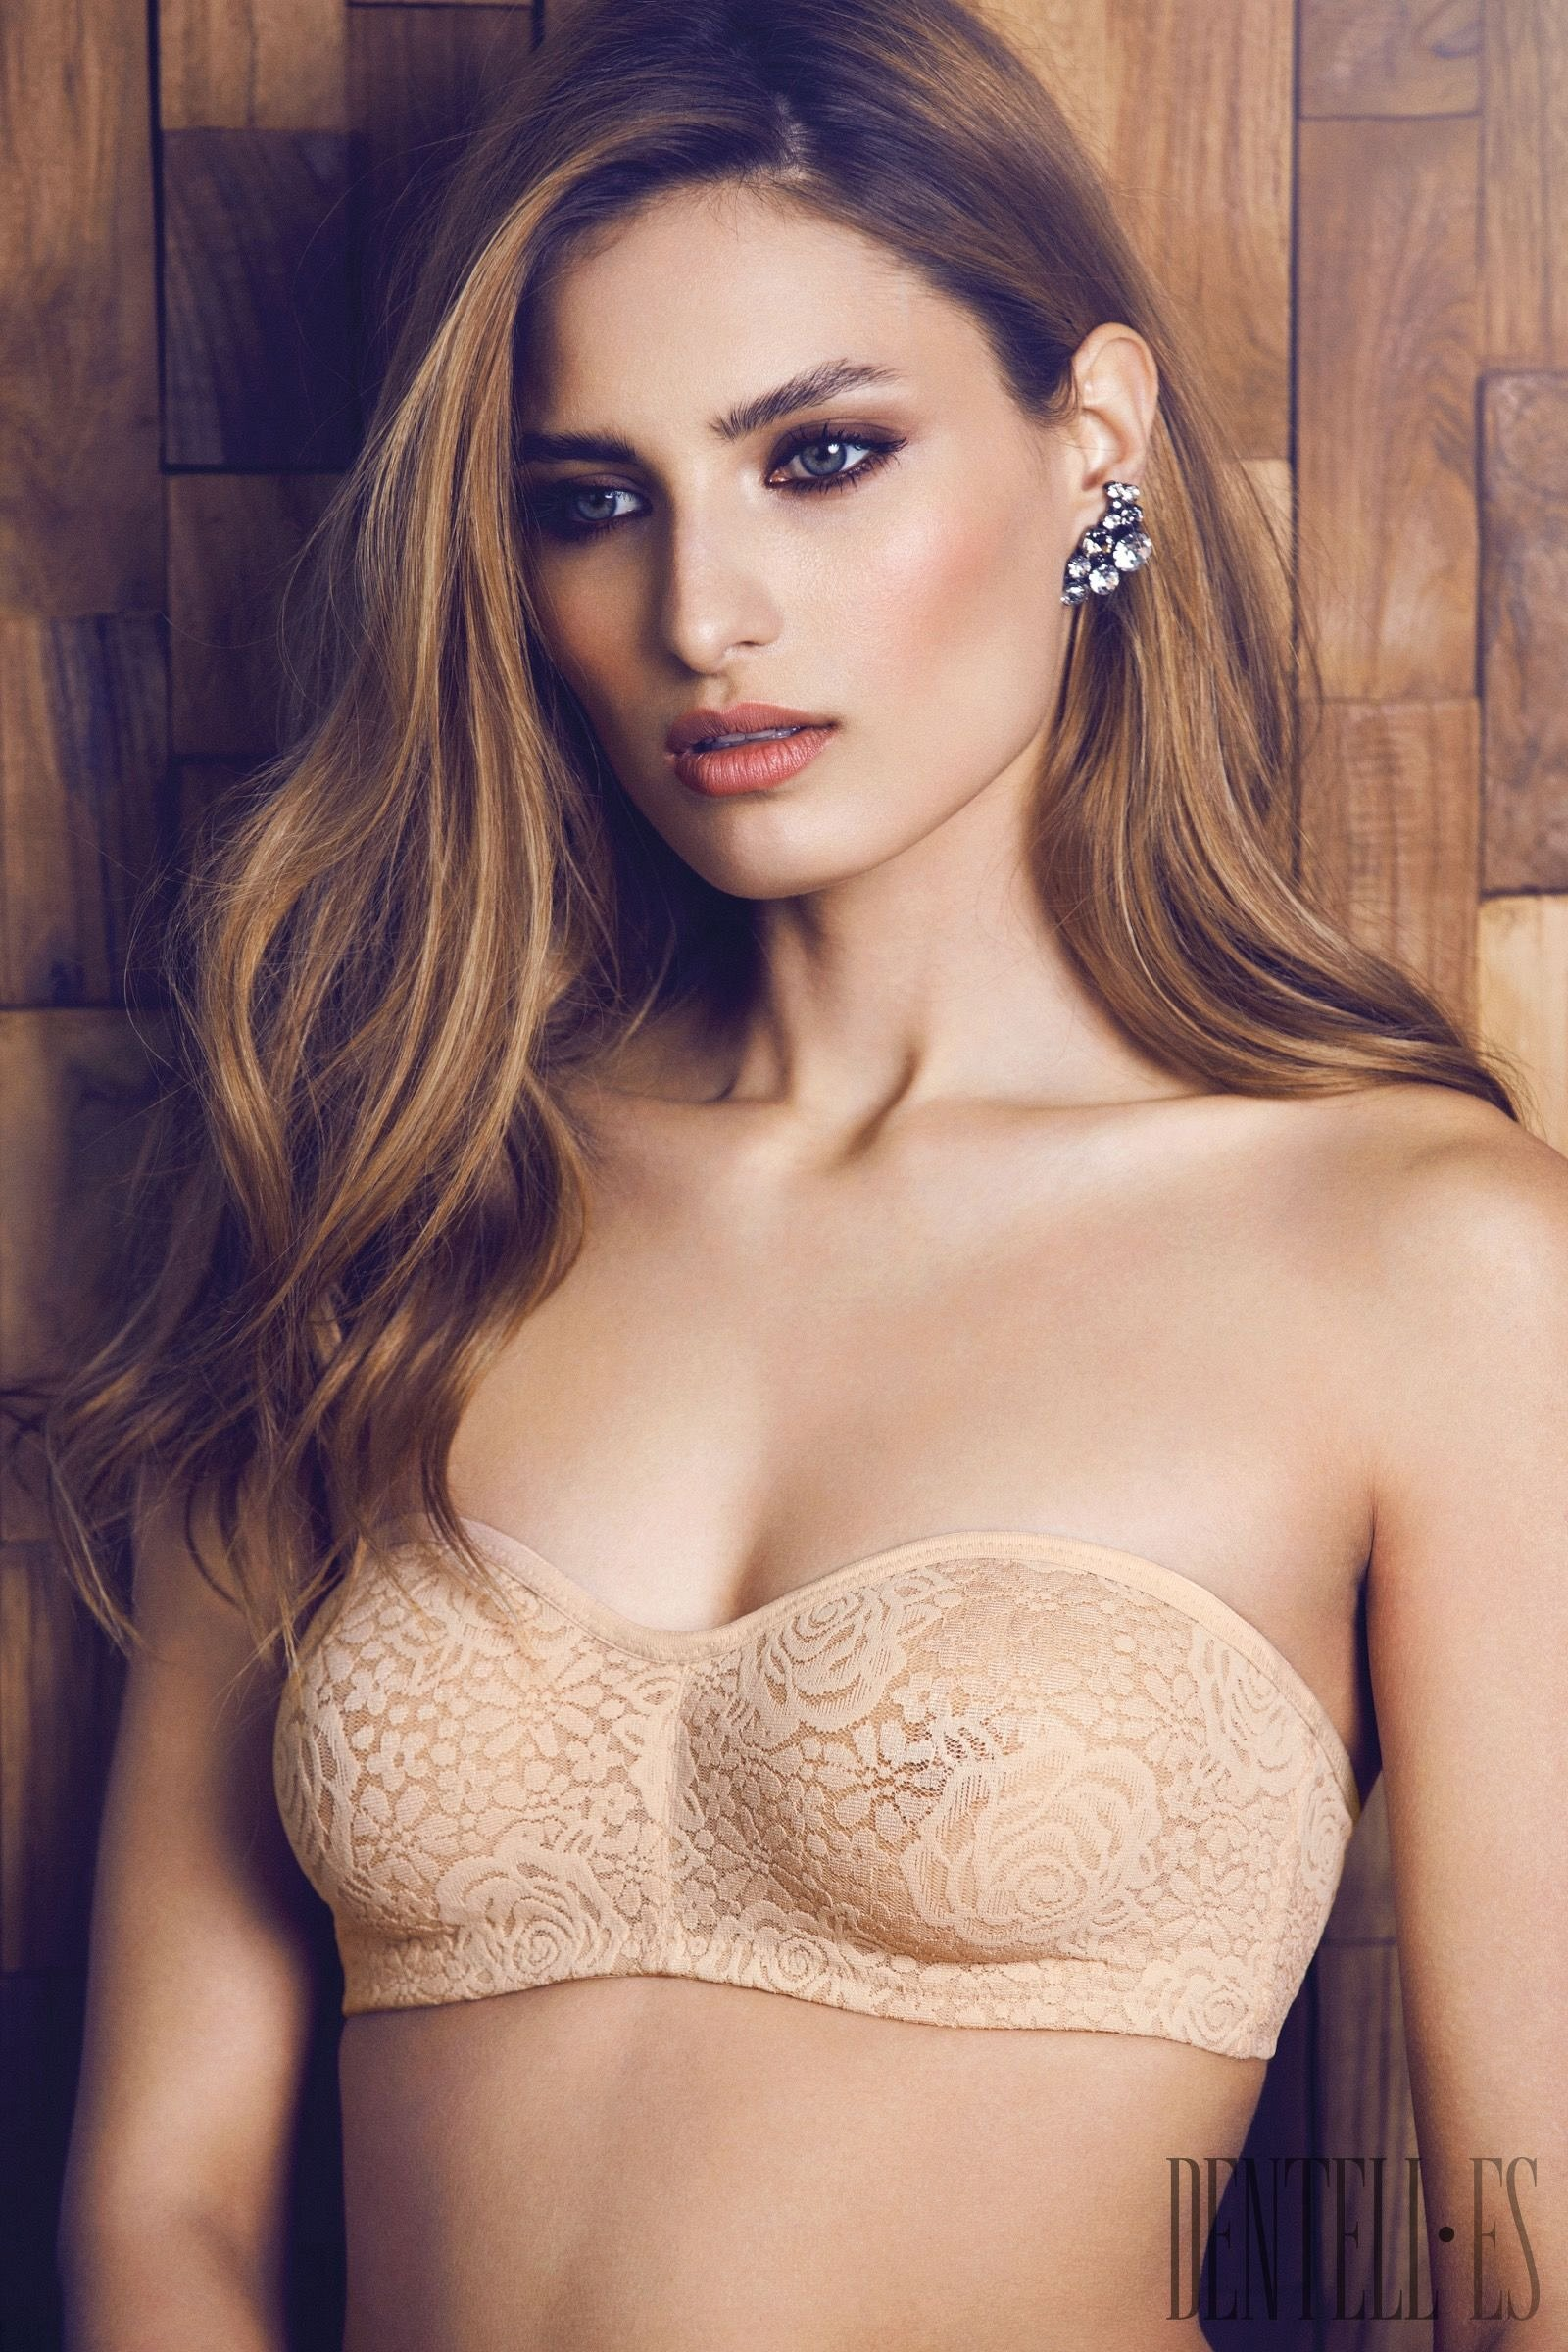 Underwear and lingerie wacoal intimates softcup bras can not